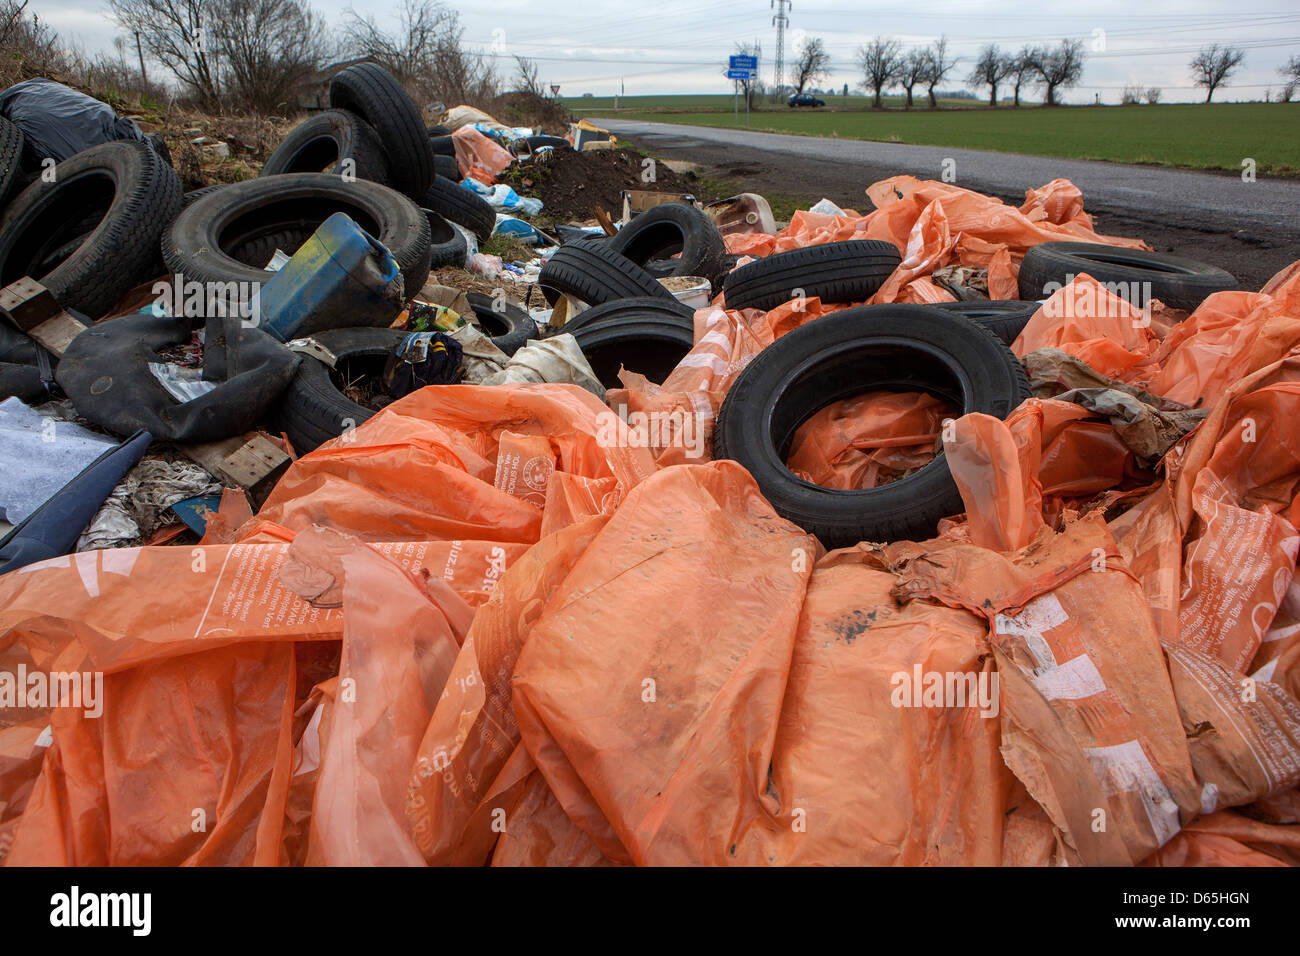 Illegal dumping of used tires discarded at county road, Czech Republic - Stock Image